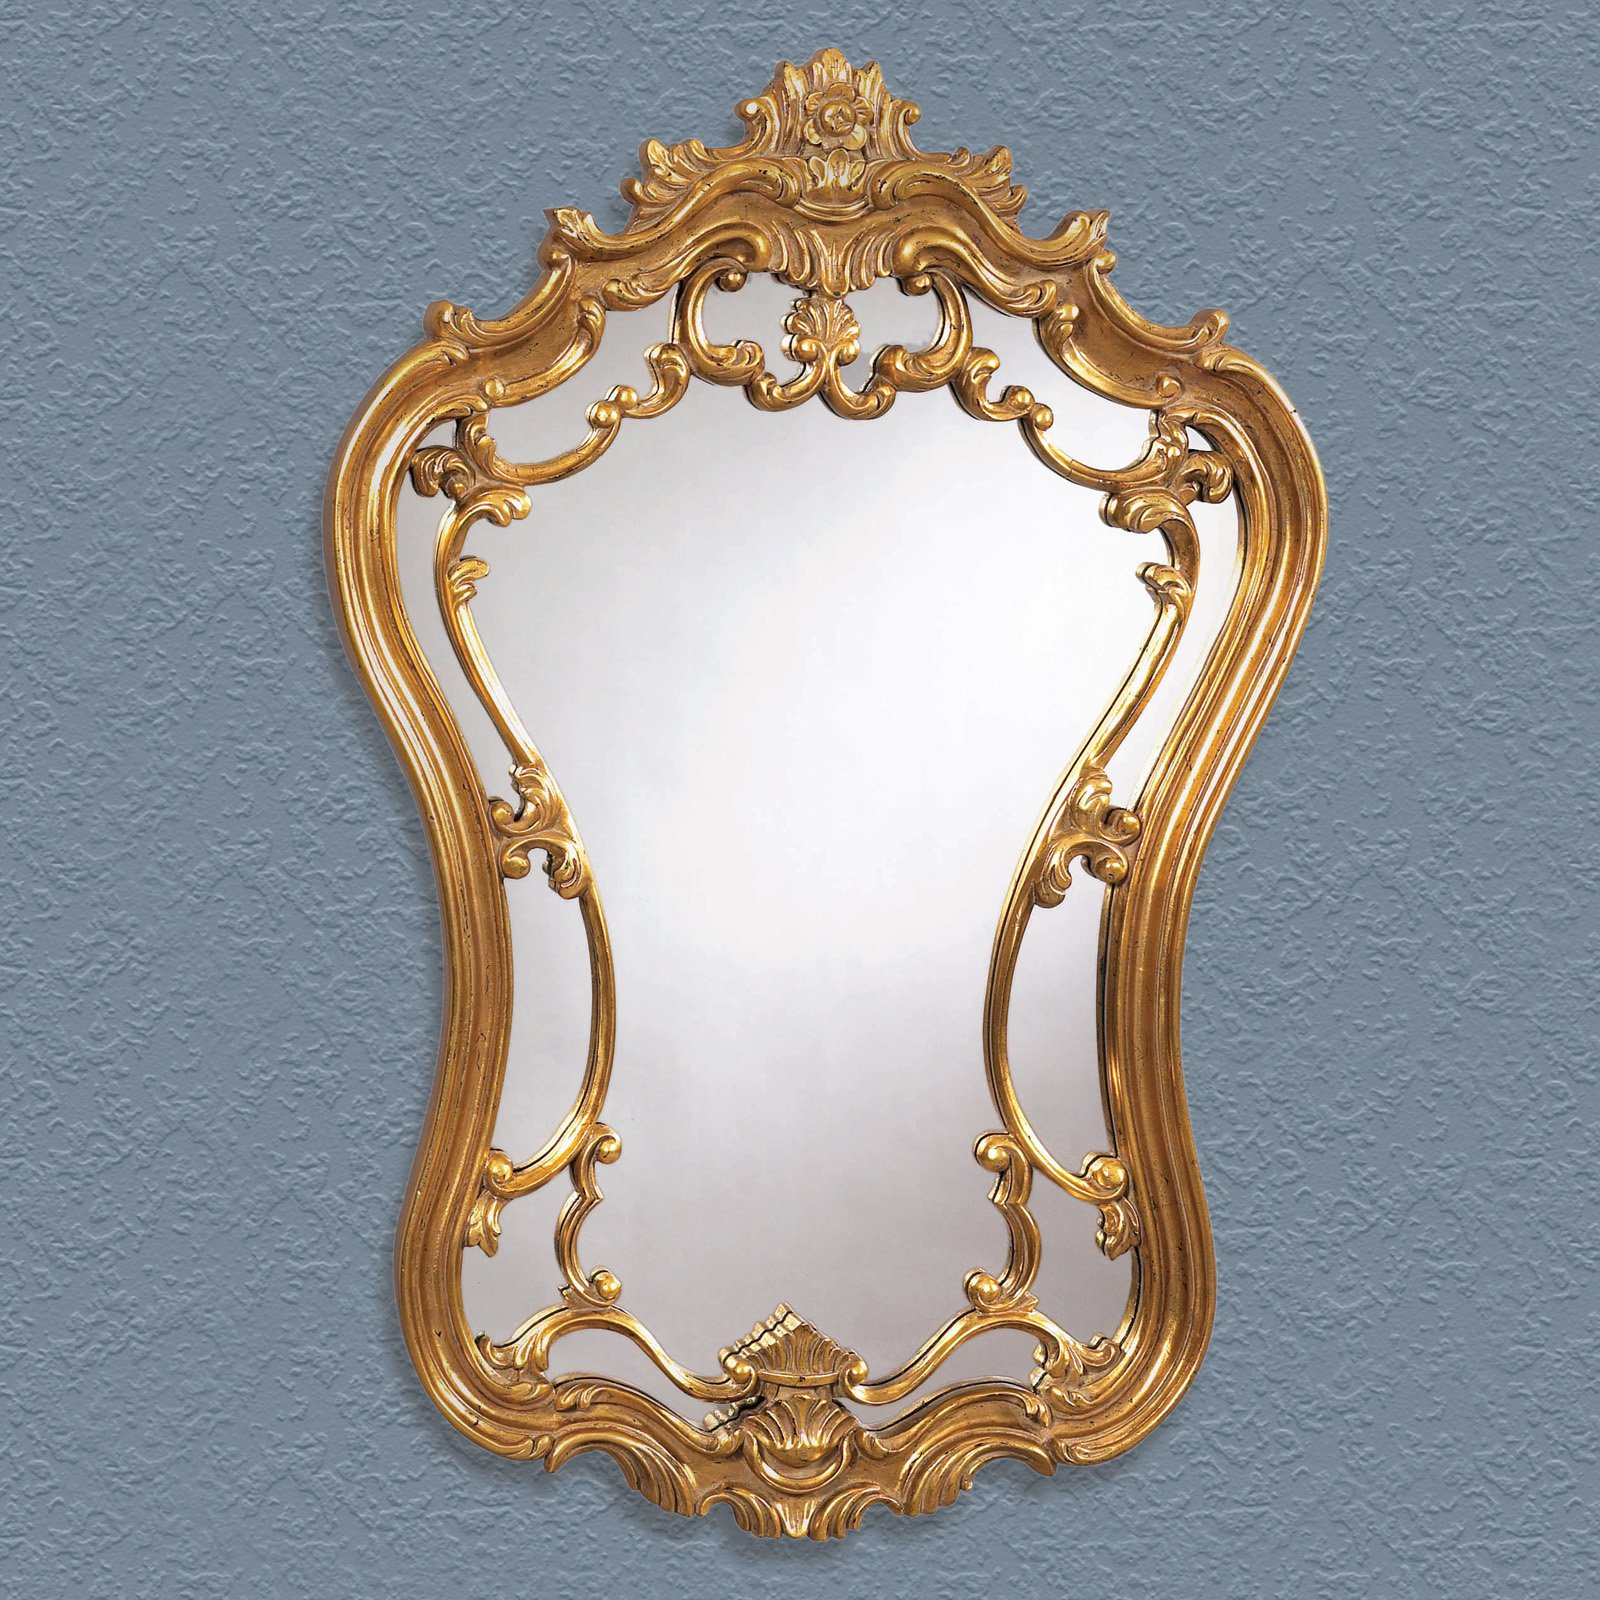 Antique Gold Ornate Arched Wall Mirror - 24W x 35H in.